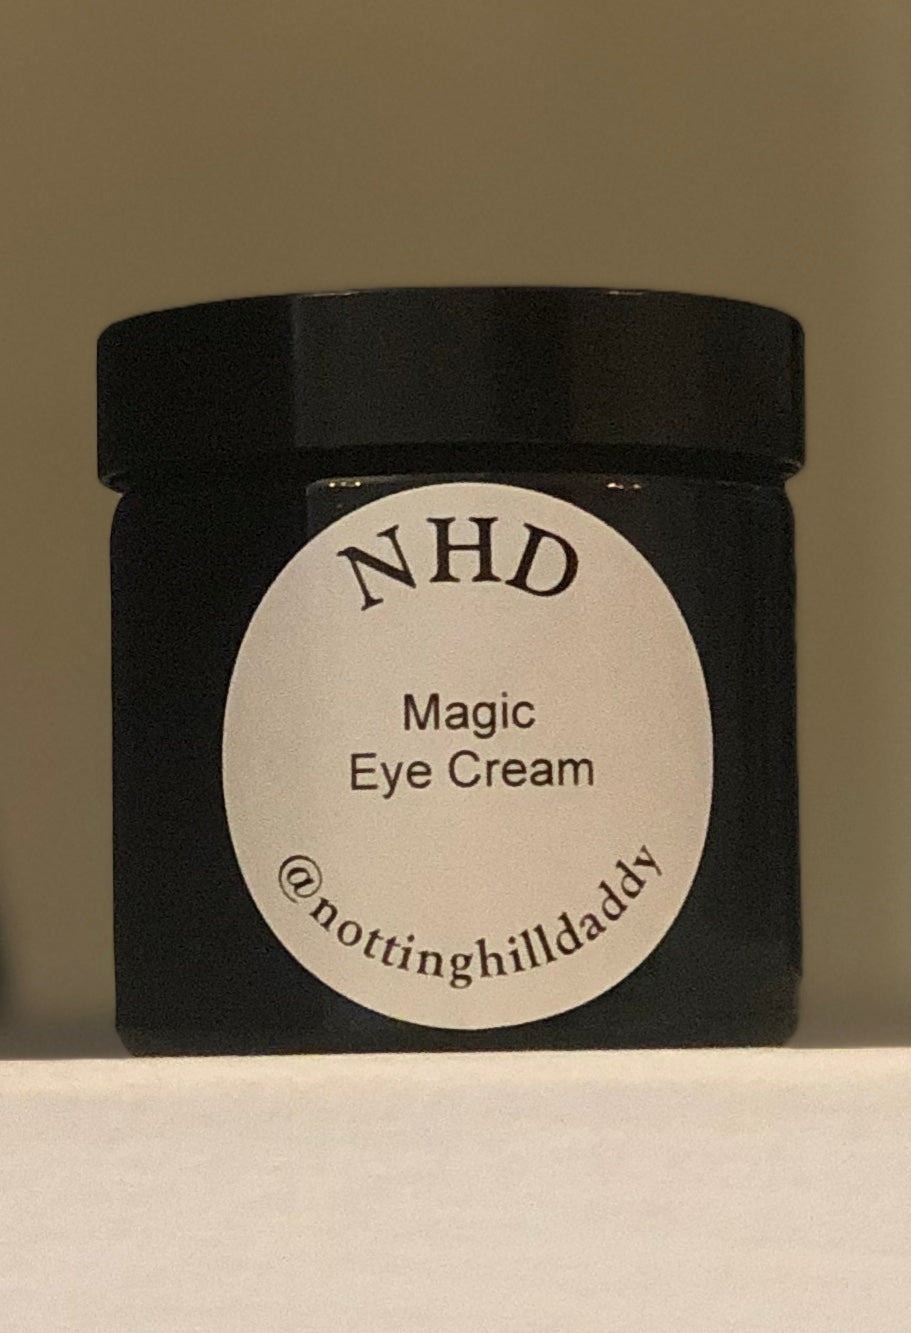 NHD Magic Eye Cream